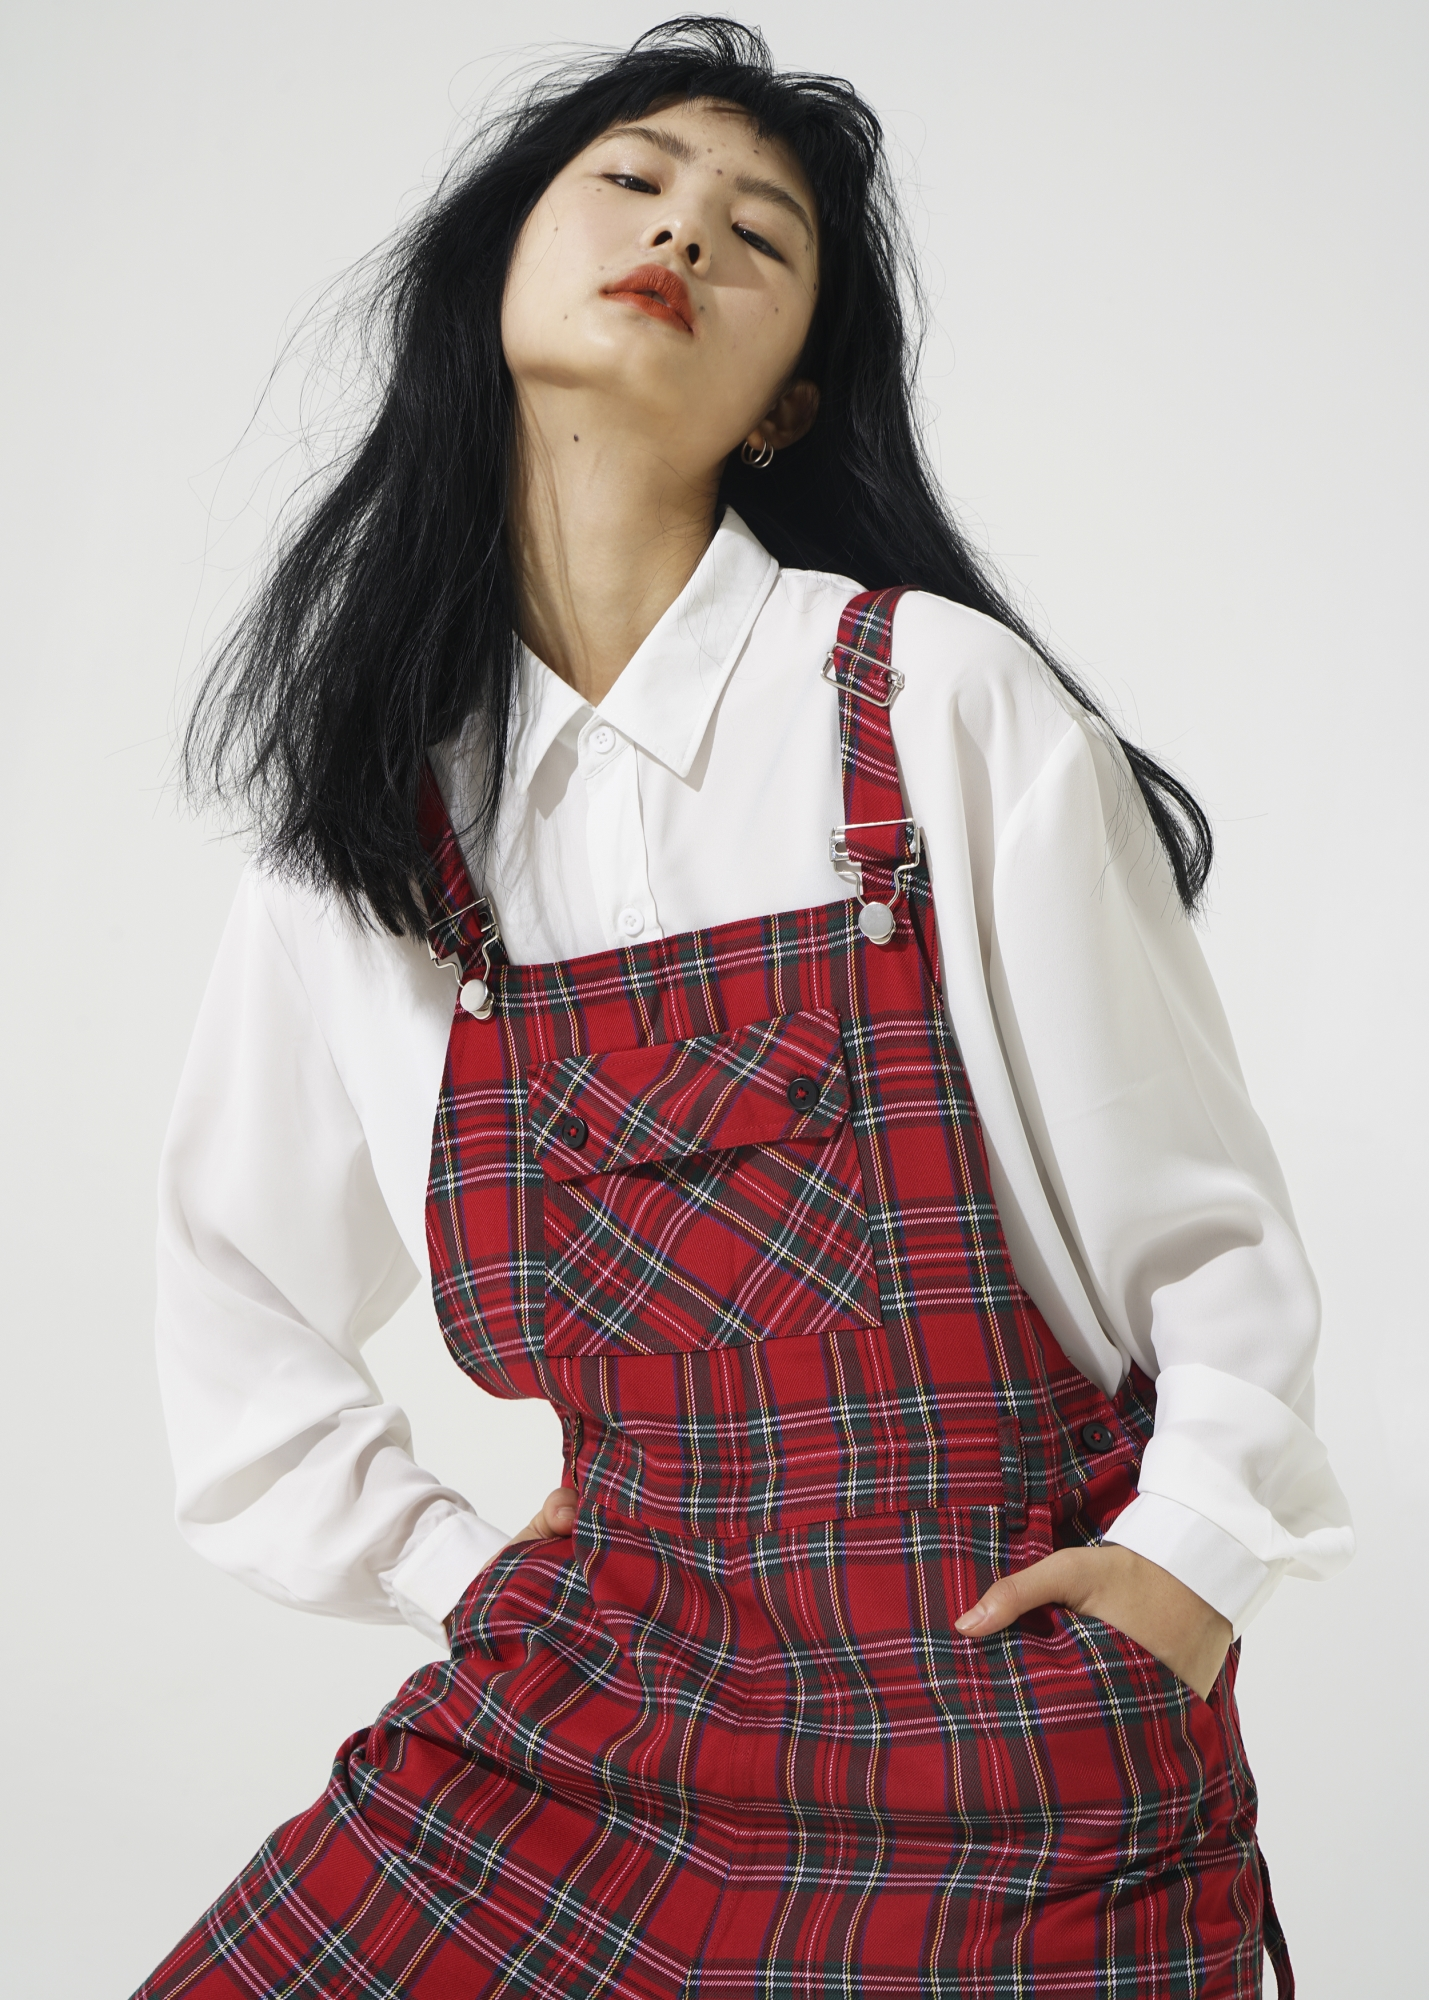 Yiniang homemade retro lovely loose British college style red plaid trousers